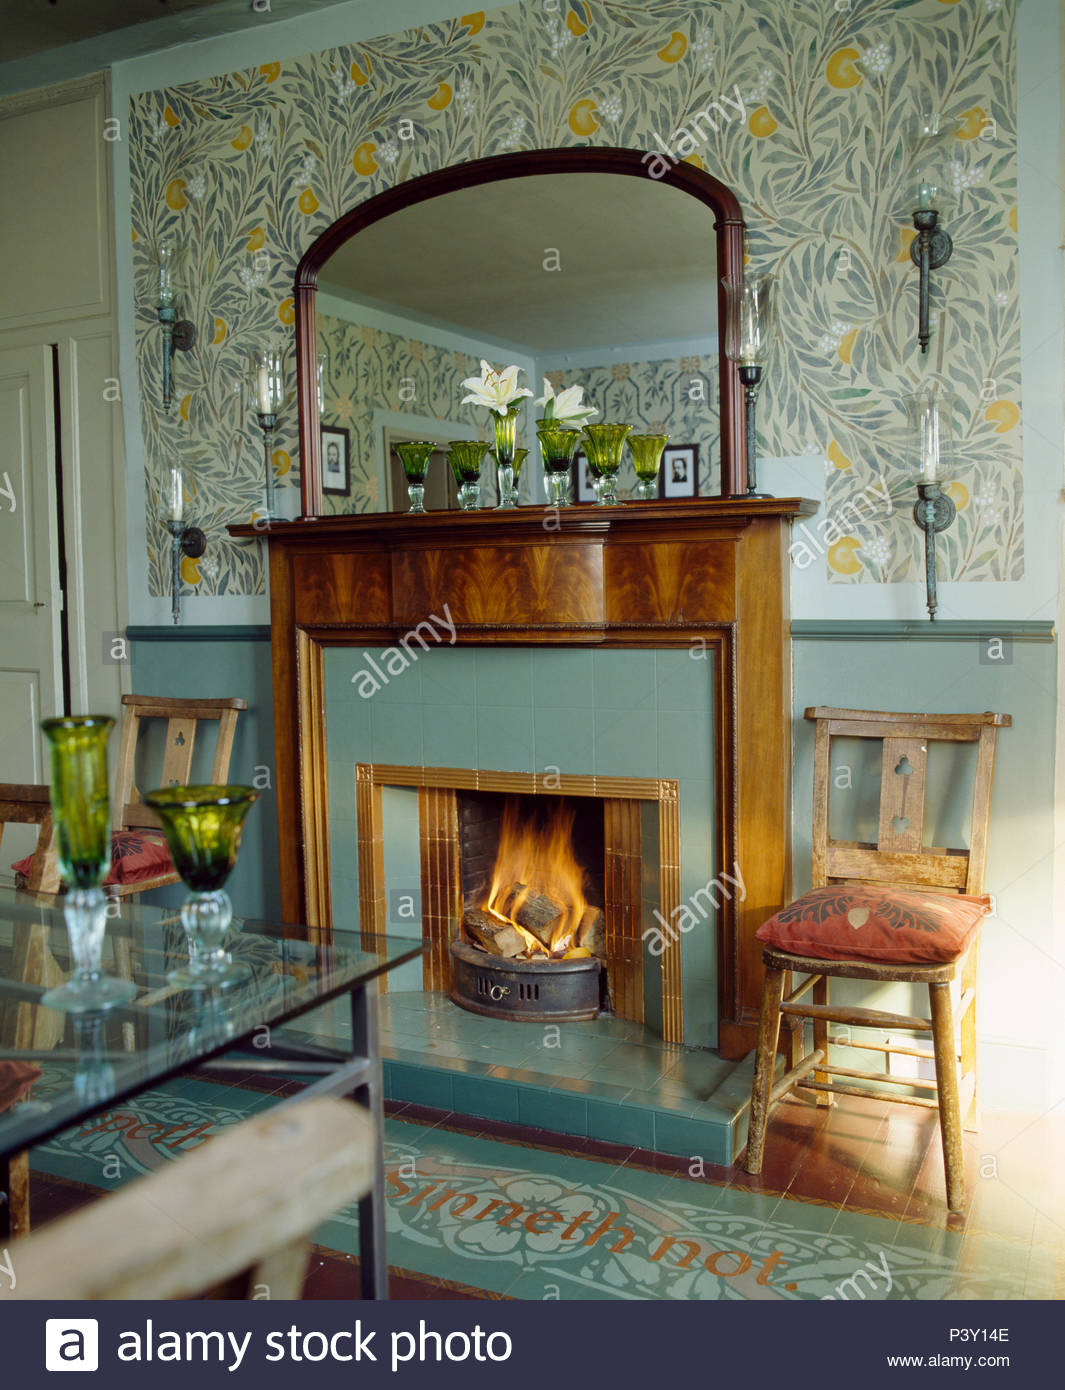 stencilled artscrafts pattern on wall above fireplace with lighted fire in country dining room P3Y14E